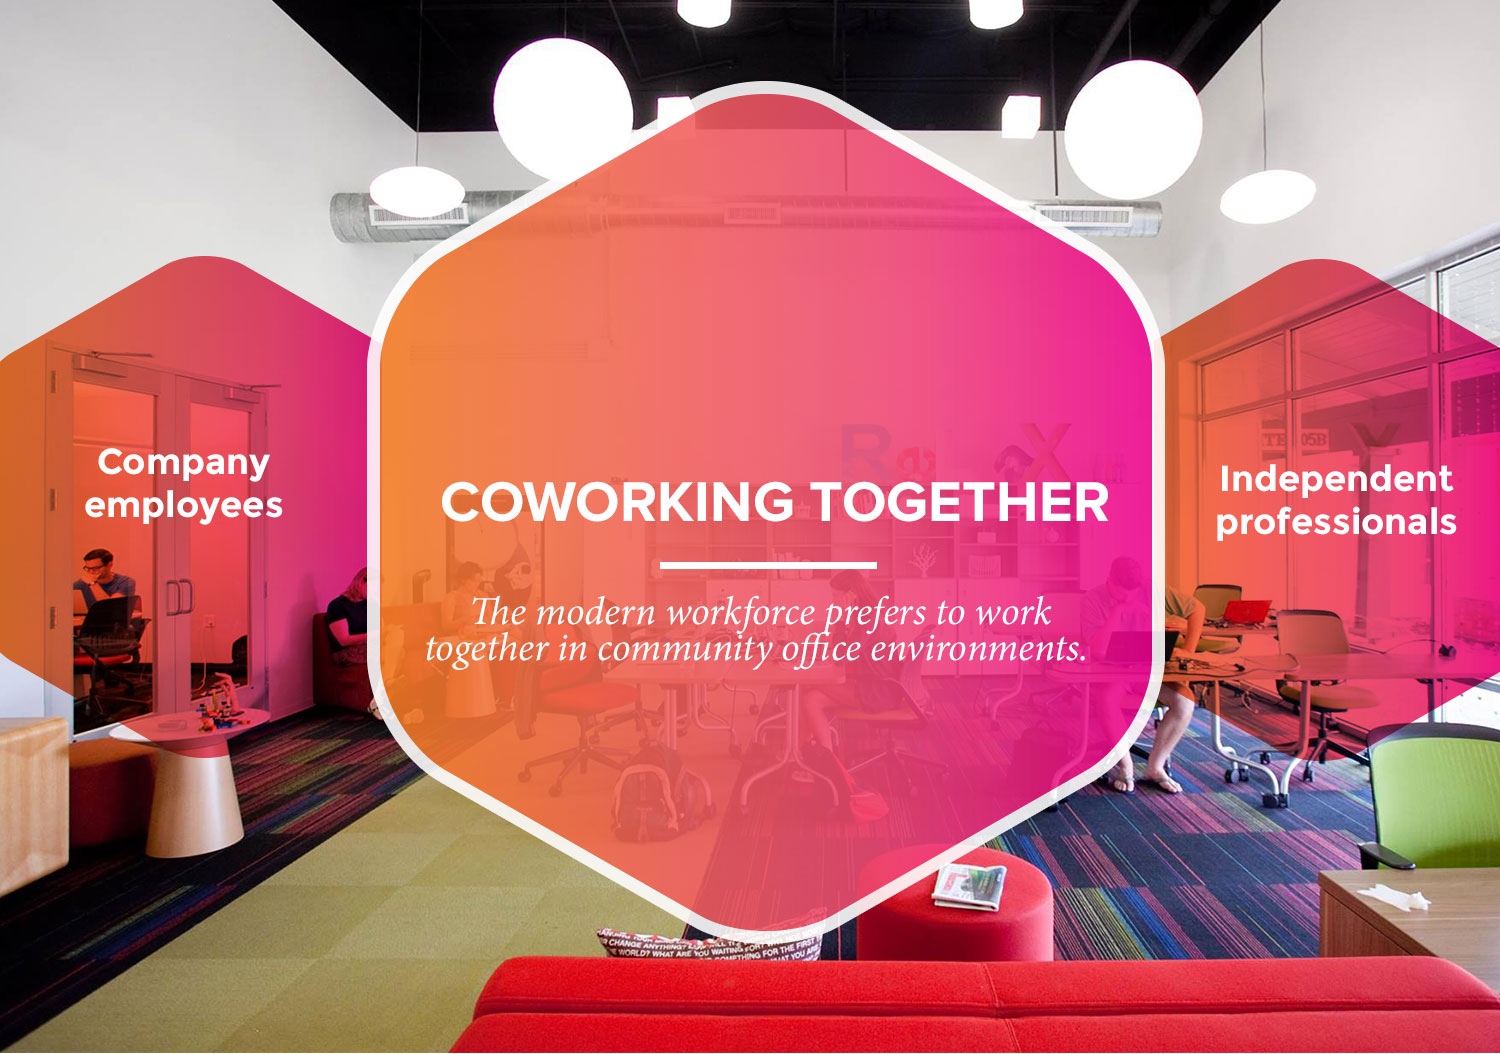 coworking together: employees and independents